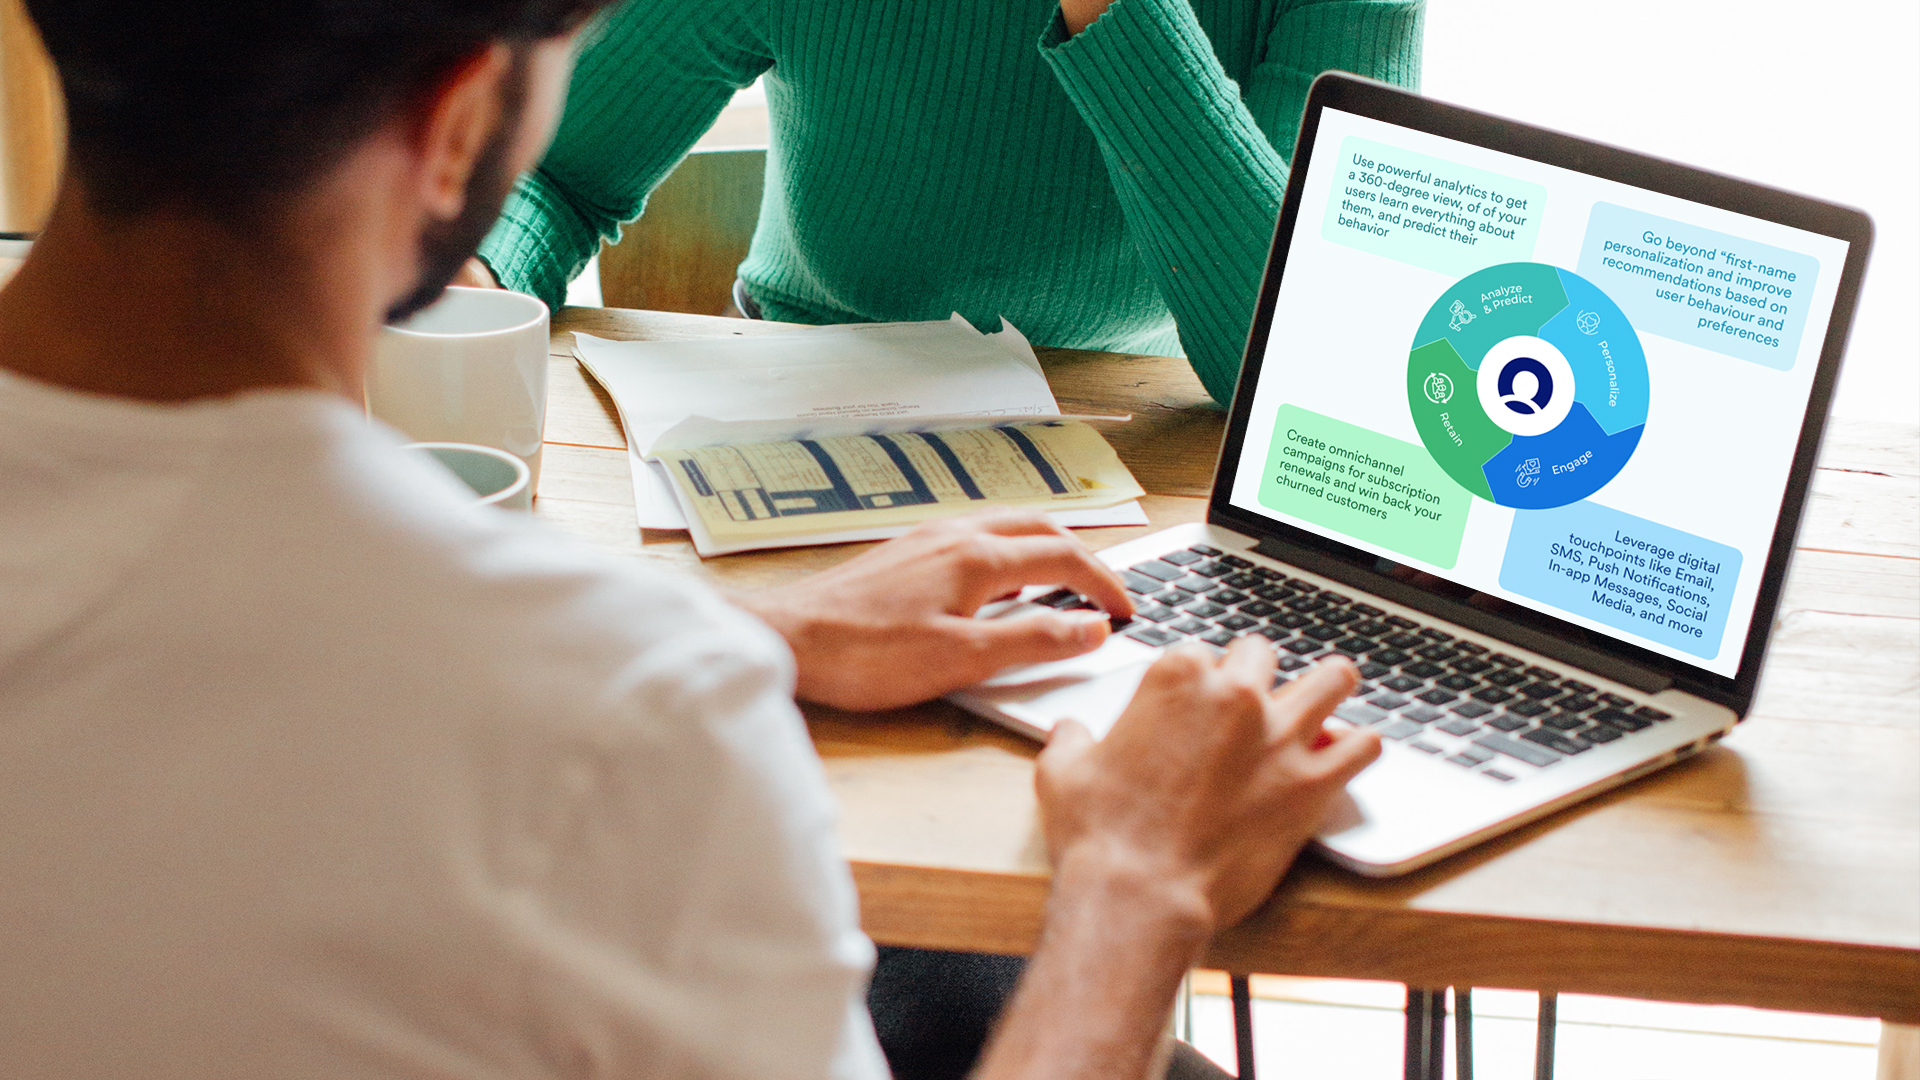 Can personalization and analytics boost business performance in South-east Asia?